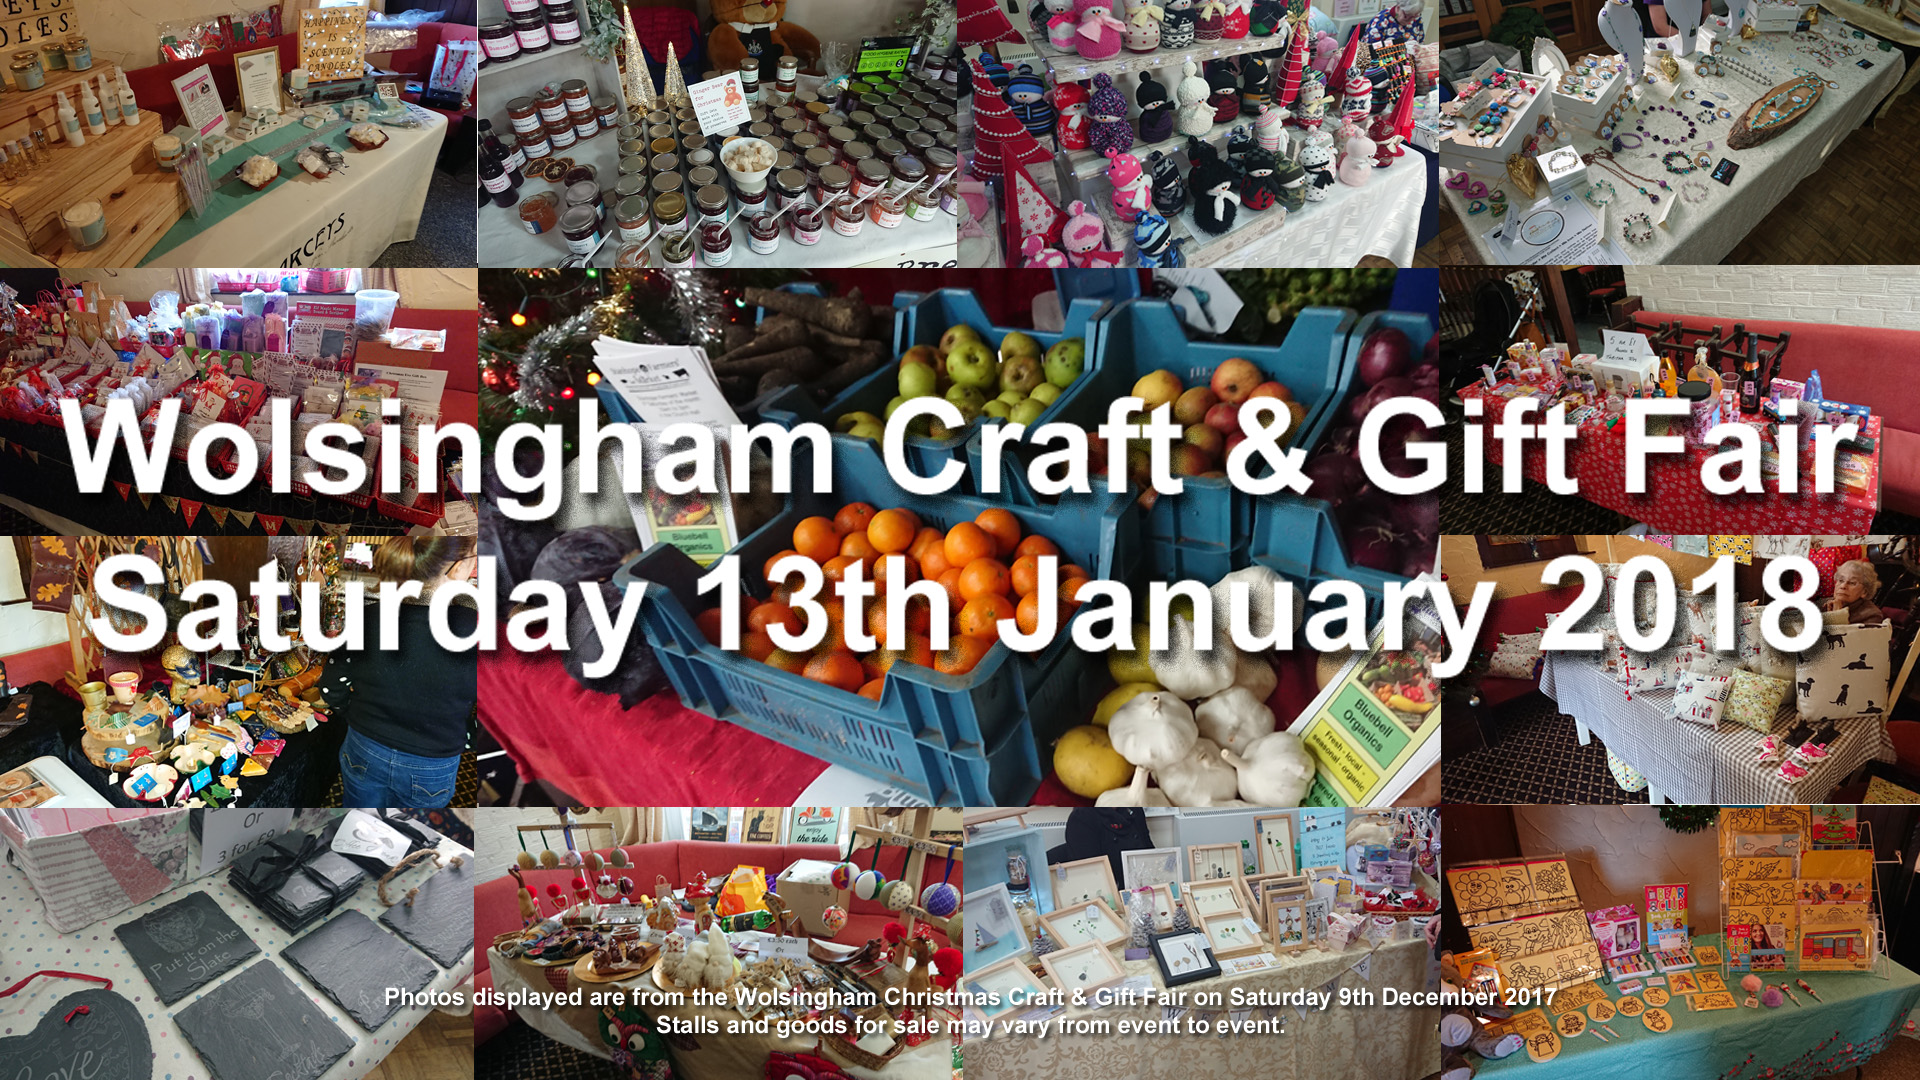 Wolsingham Craft & Gift Fair